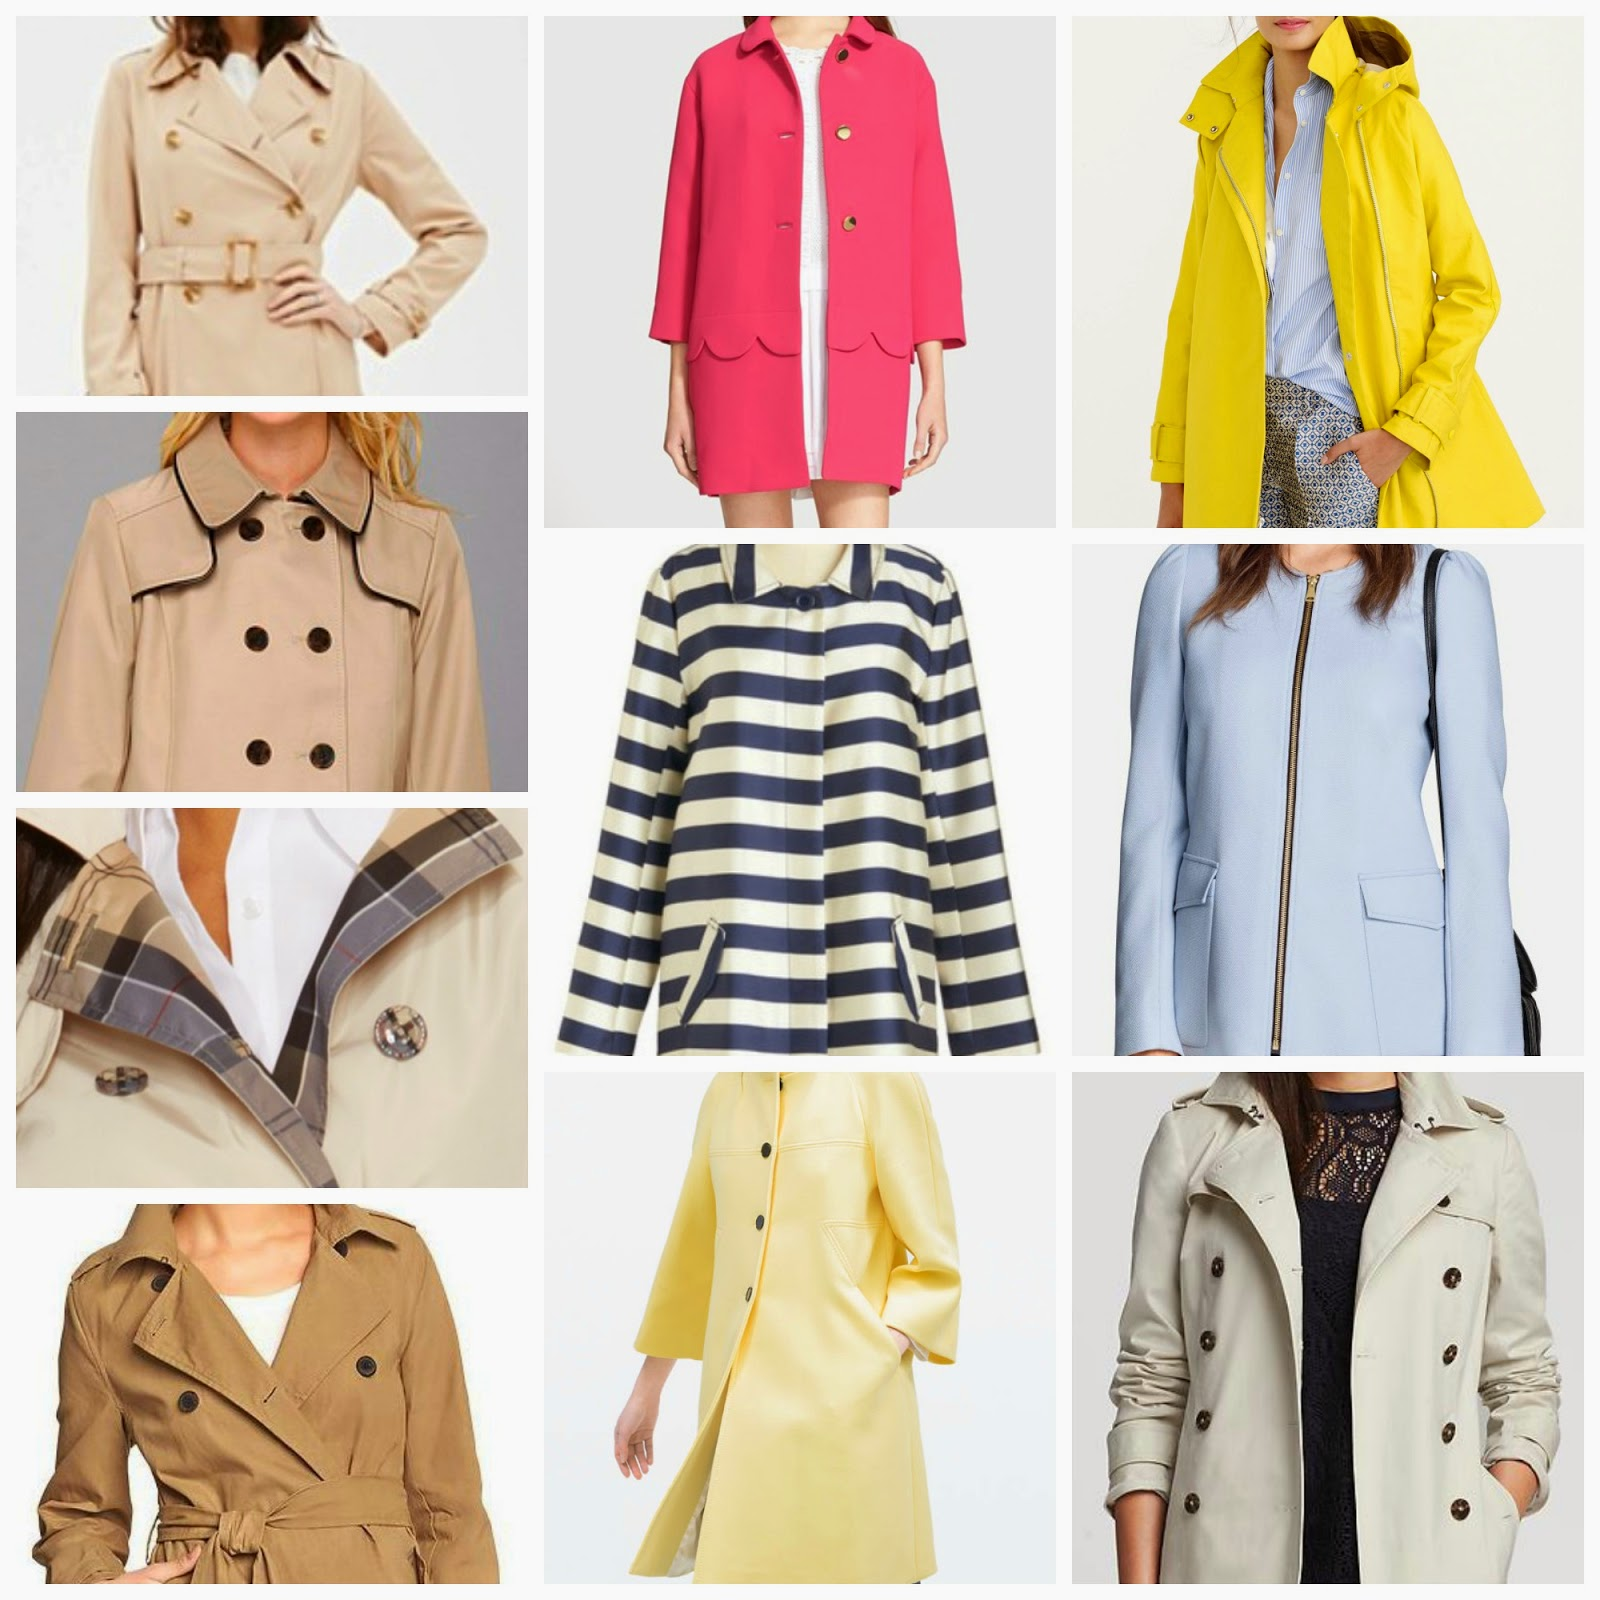 10 classic coats for spring j crew kate spade barbour